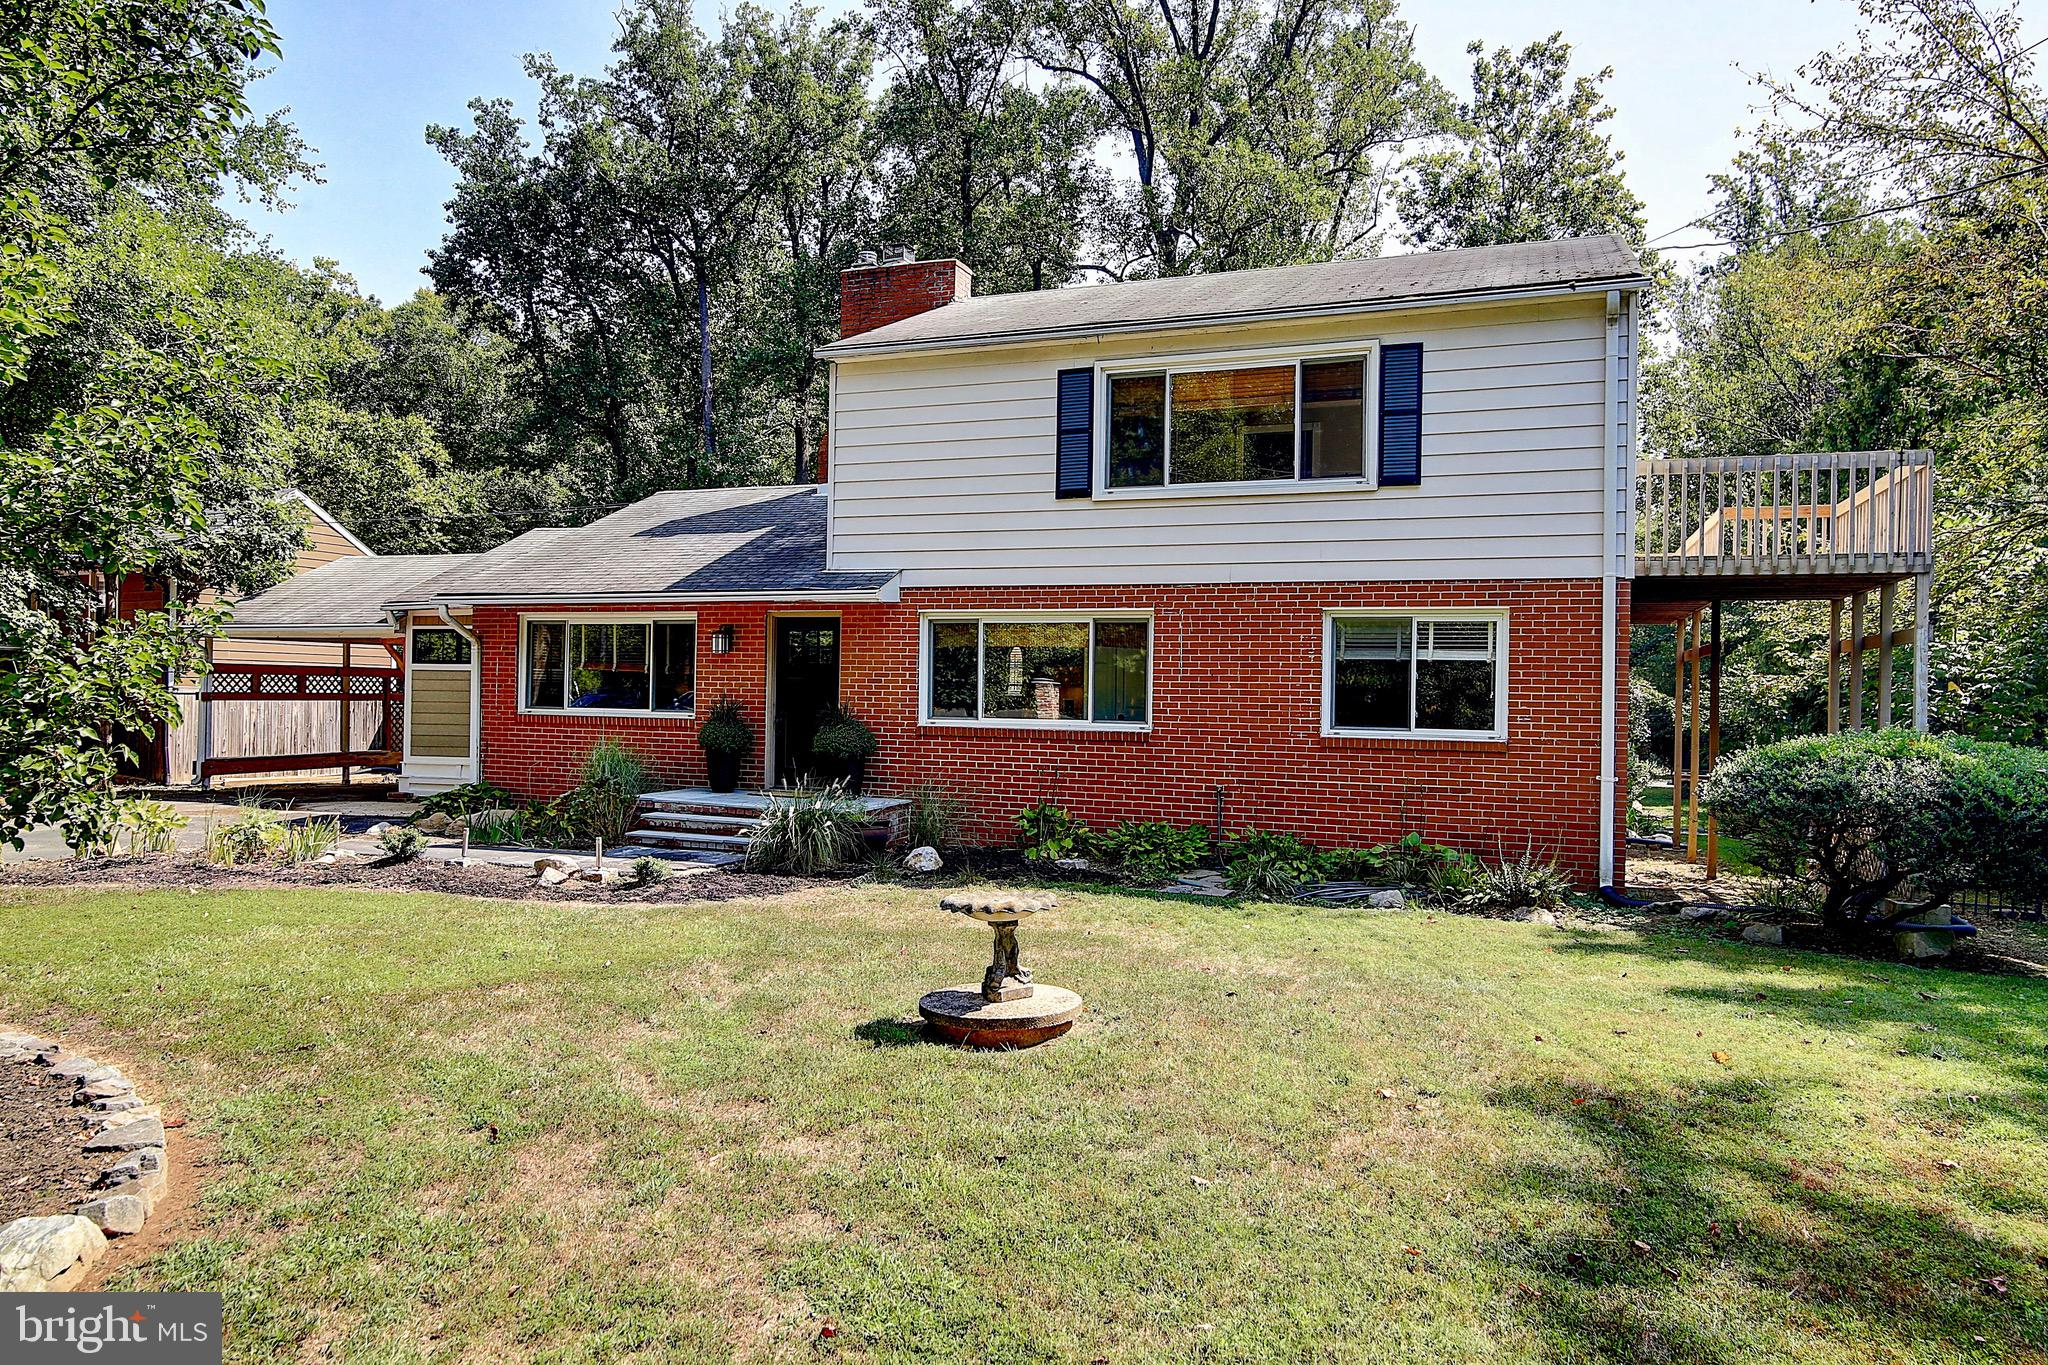 Here is your unicorn! Expertly renovated home filled with character and all the modern amenities on a private 1/2 acre lot INSIDE the beltway! Minutes to 395, 495 & 95. Half a mile to a METRO Bus Stop. Less than 5.5 miles to VRE station. No HOA community. The lower level features a gourmet kitchen, large living room/ dining room with library, den/ office/ guest room, 2 bedrooms, 1 full & 1 half bath and large laundry room. The upper level offers a functional family room and spacious master suite with spa bath and walk-in closet. Your living space is expanded outside with 2 decks, a Four Seasons Room, patio and pavilion. Enjoy fall evenings by your fire pit. The hardest part of living here is deciding if you want to stay-cation at home or explore all DC has to offer!